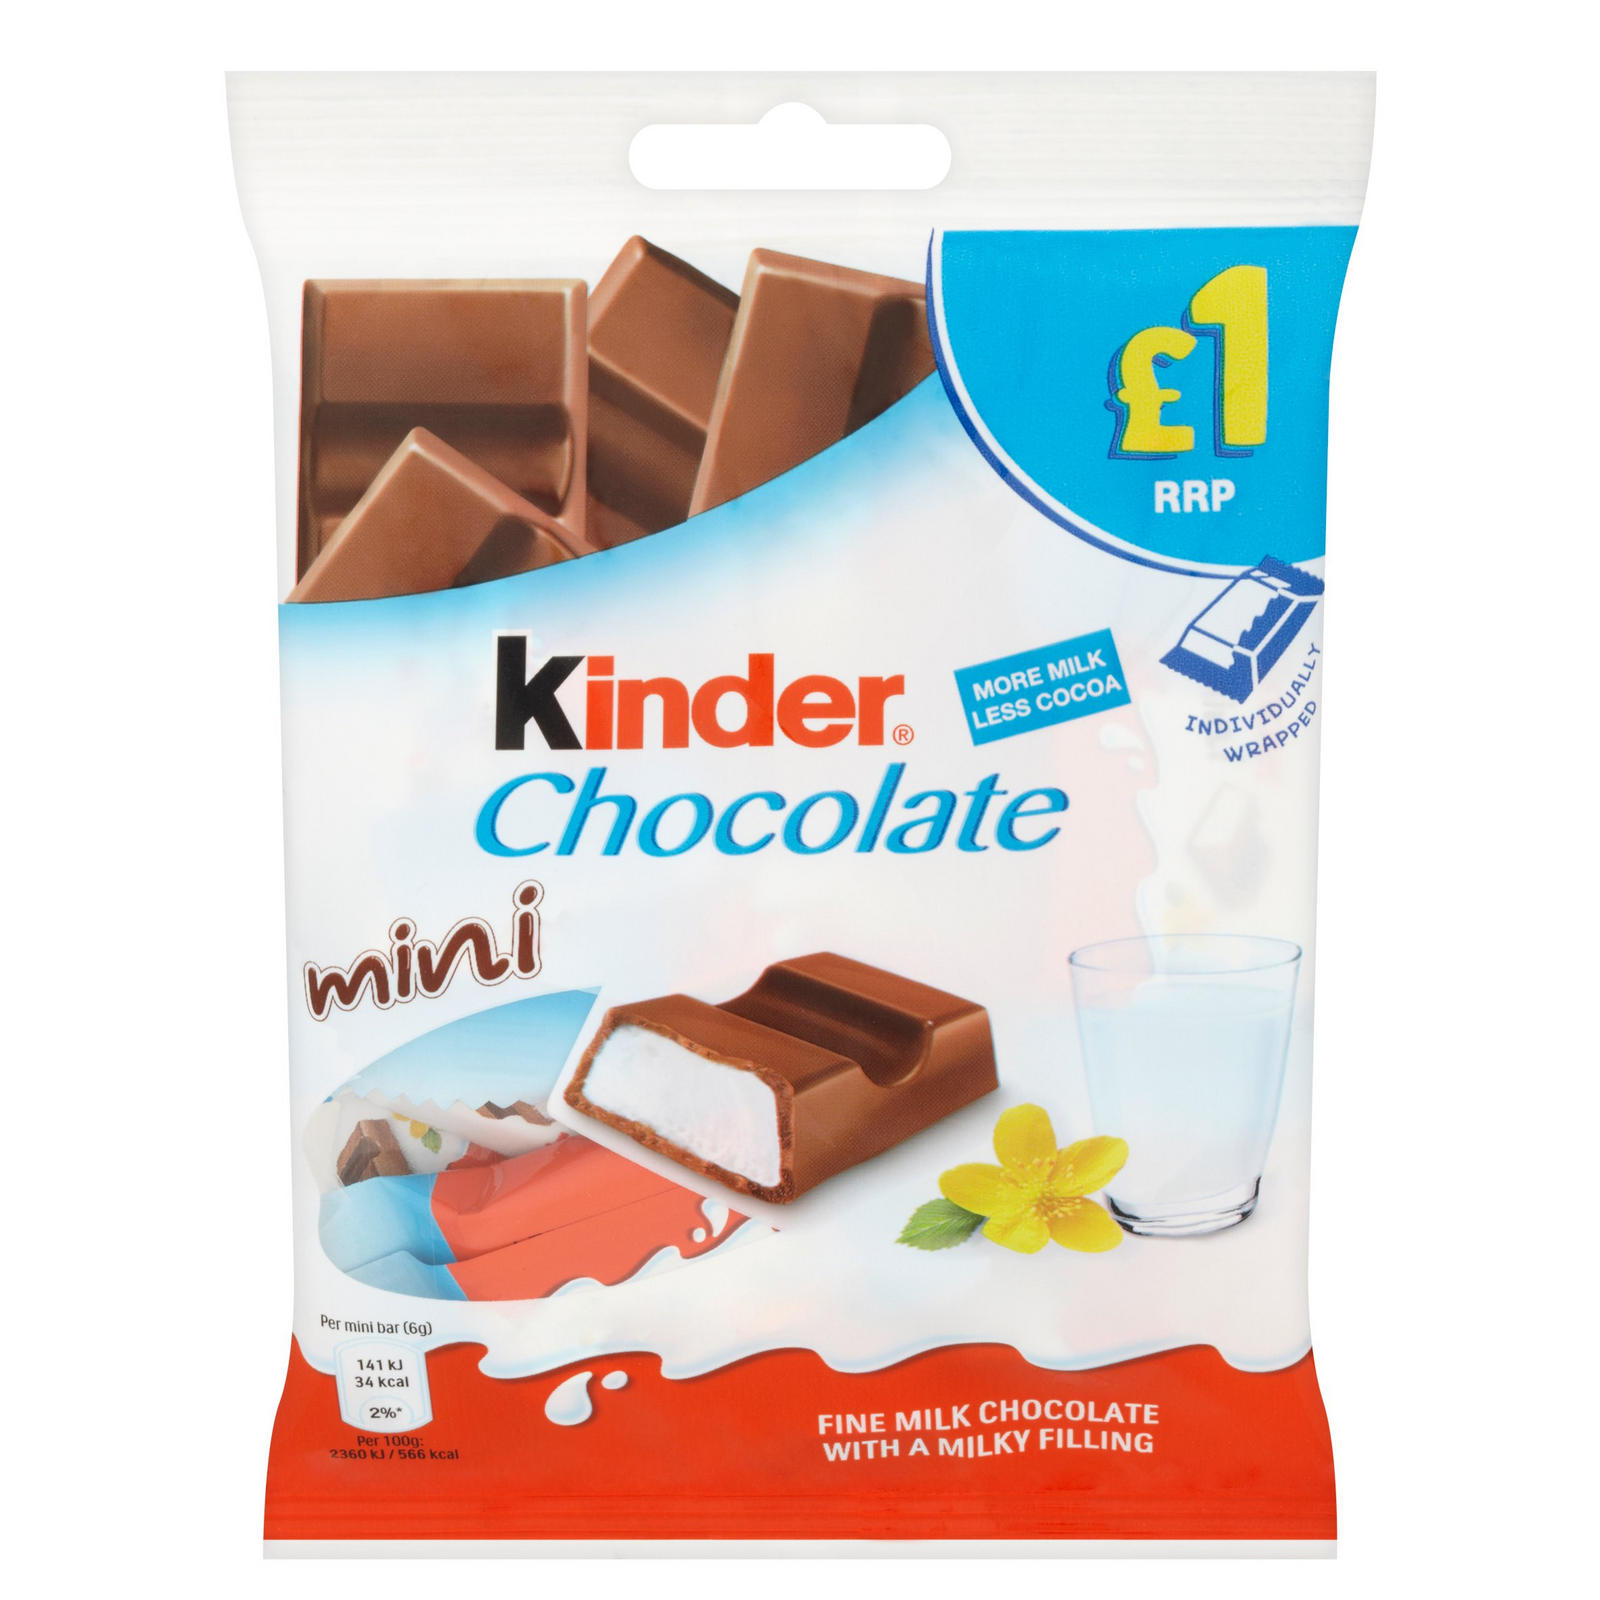 Kinder Chocolate Mini Pouch 72g Sharing Bags Tubs